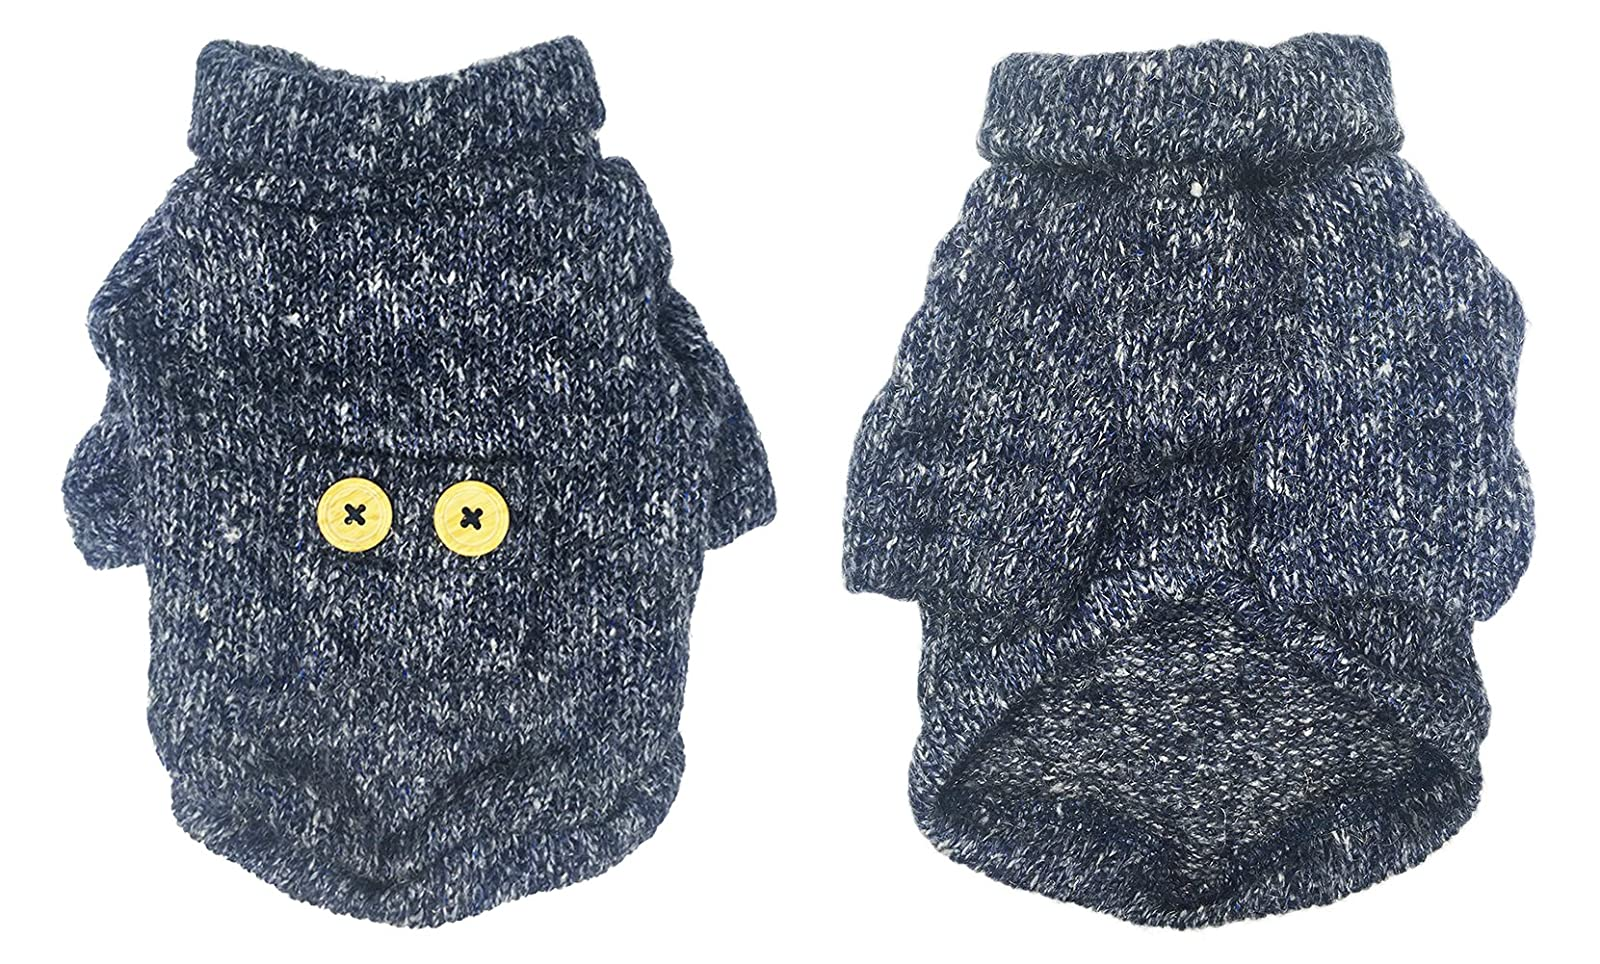 EastCities Pet SweatersSmall Dogs Cats Clothes Puppy - 4